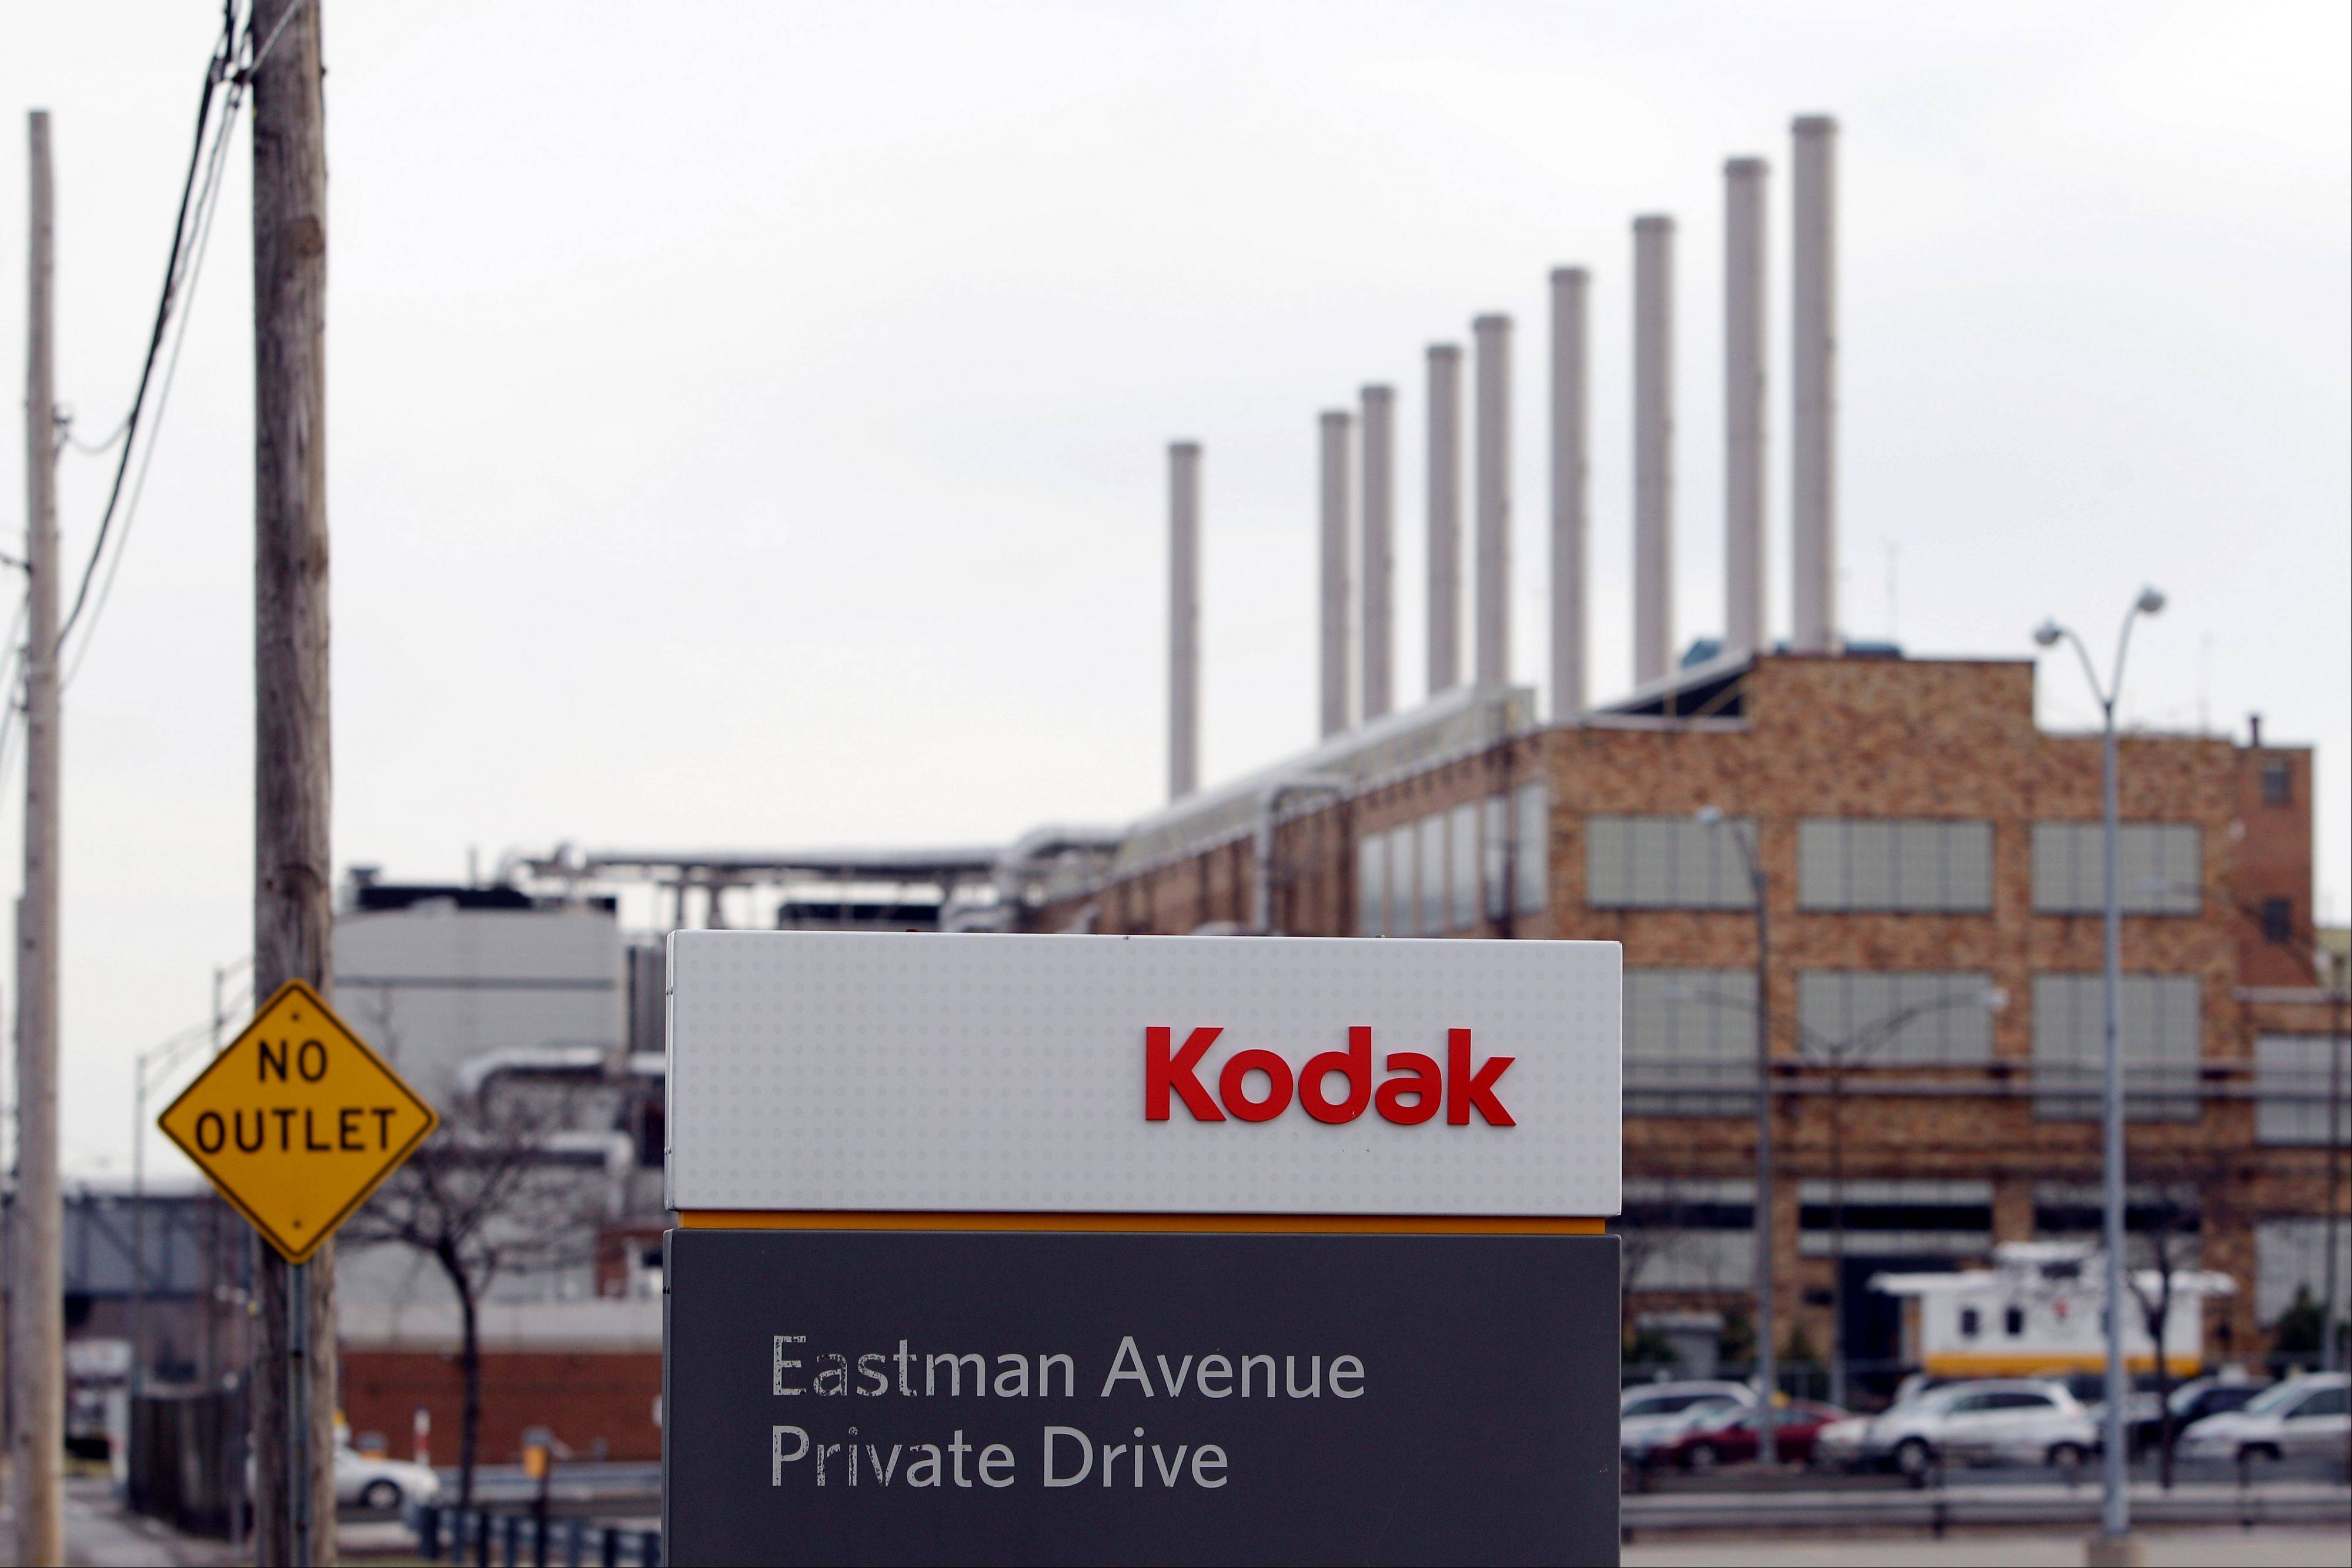 FILE - This Jan. 6, 2012 file photo shows a Kodak factory in Rochester, N.Y. On Tuesday, Aug. 20, 2013, a federal judge approved Kodakís plan to emerge from bankruptcy protection. The ruling paves the way for the photography pioneer to emerge from court oversight as a new company focused on commercial and packaging printing. The company has said it hopes to emerge from bankruptcy protection on Sept. 3, 2013.